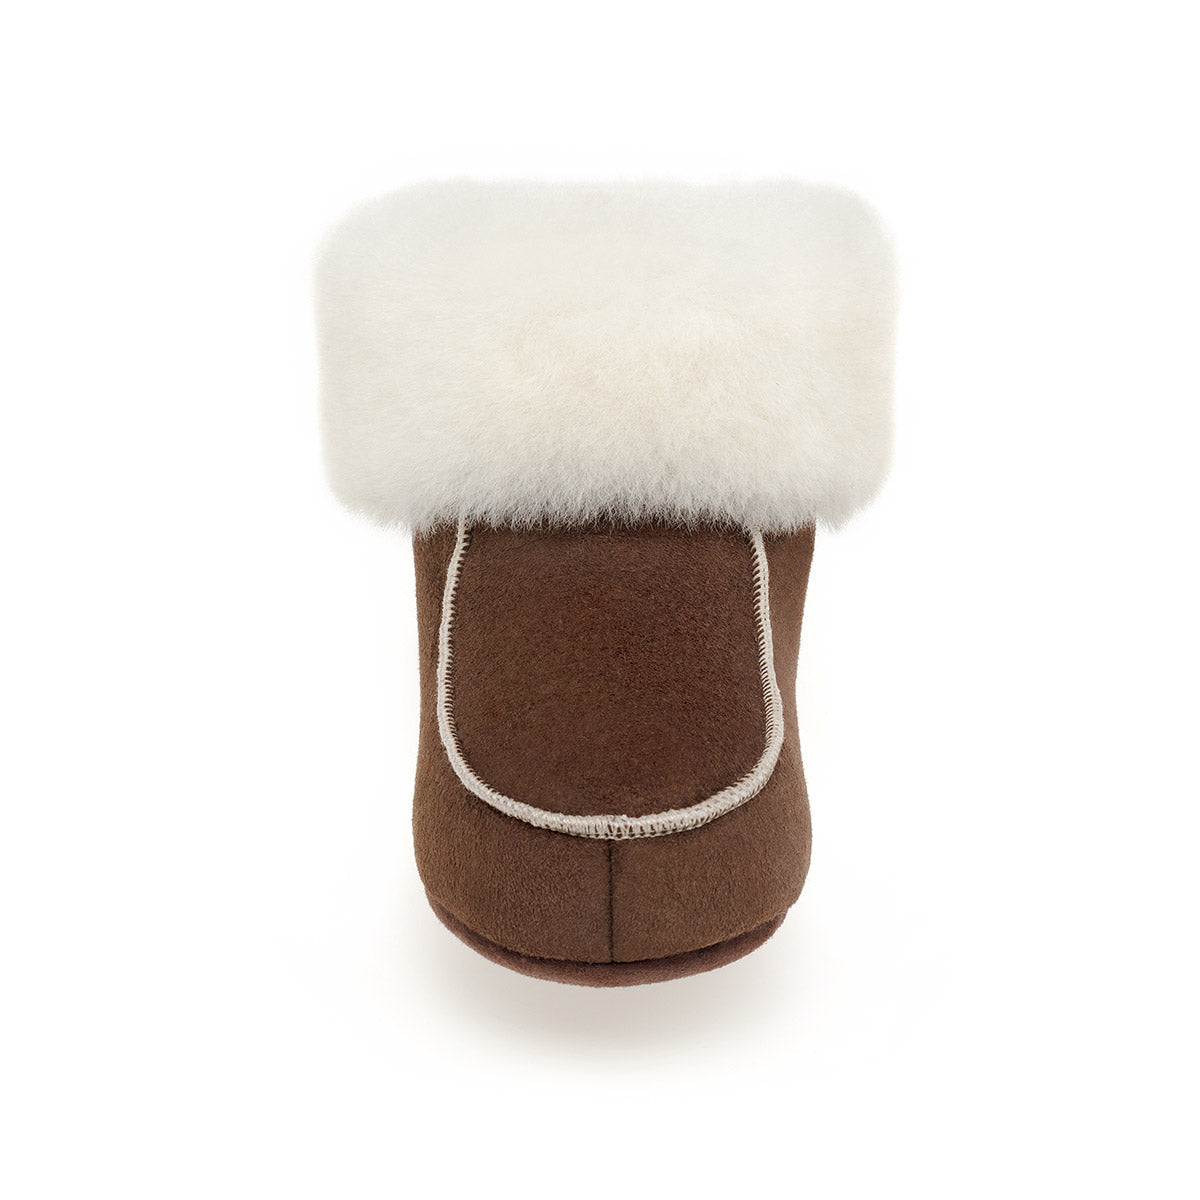 NEW Aster Sheepskin Slippers - Cappuccino